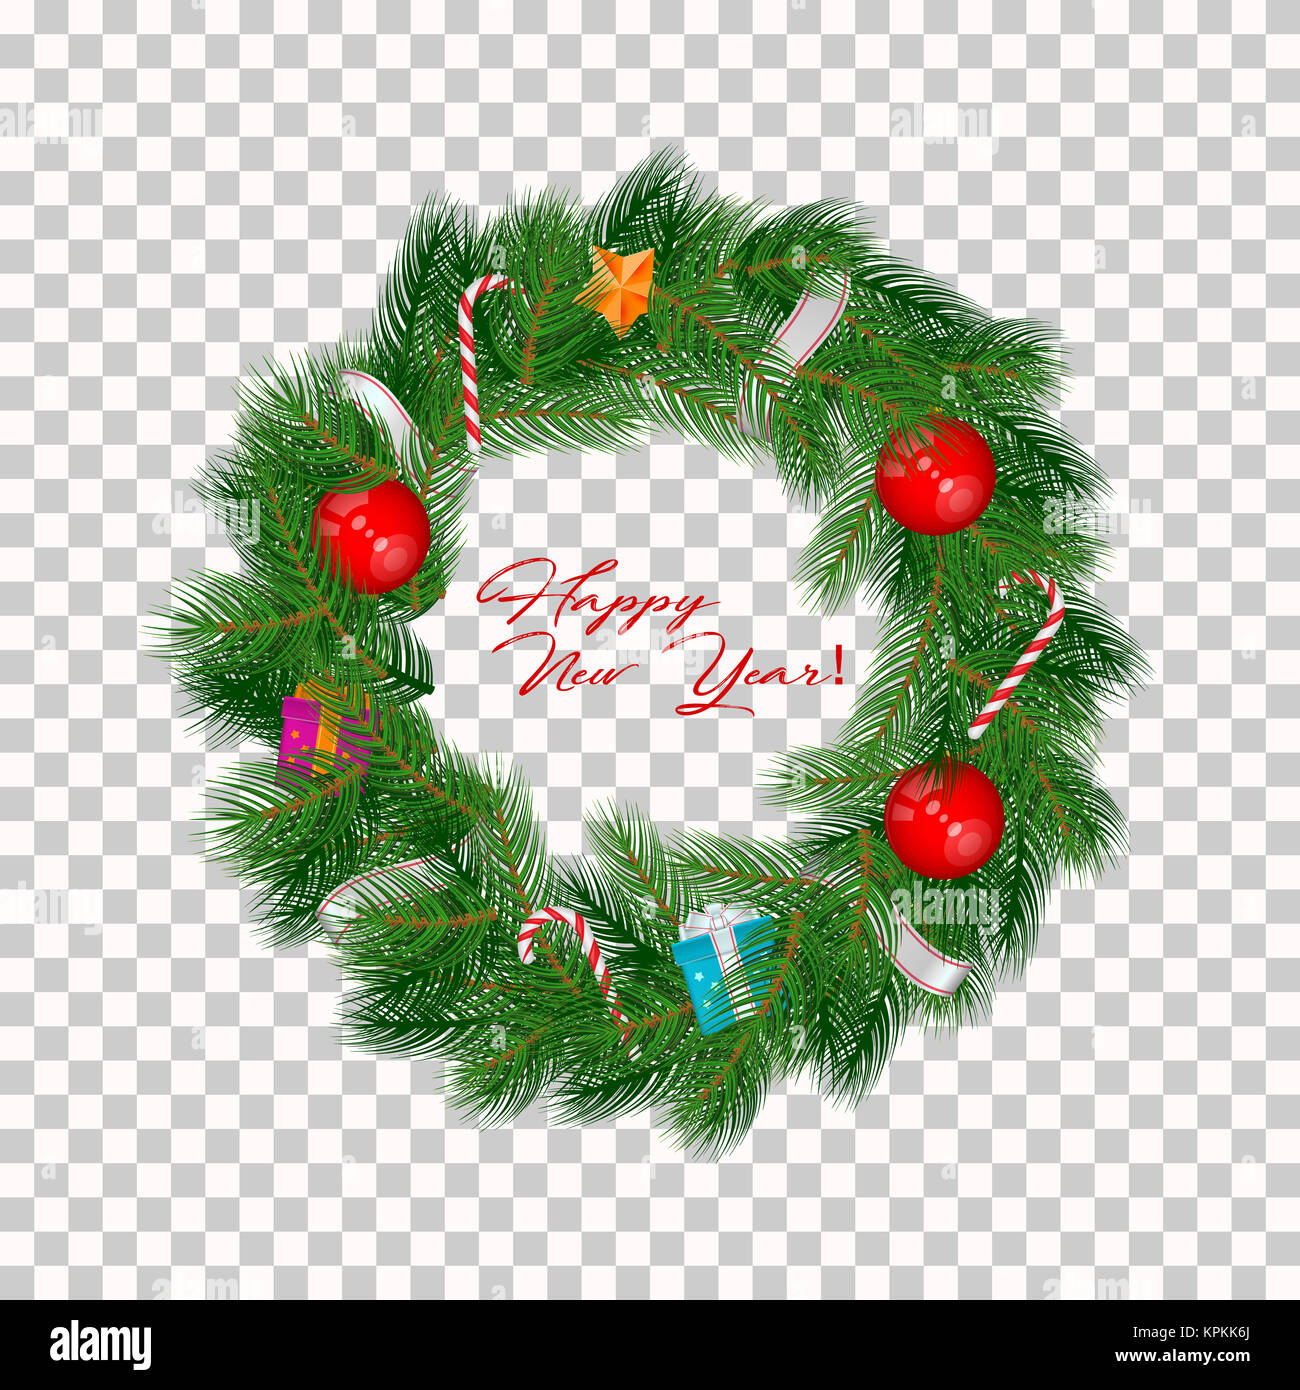 Realistic Christmas Wreath Isolated On Transparent Background With